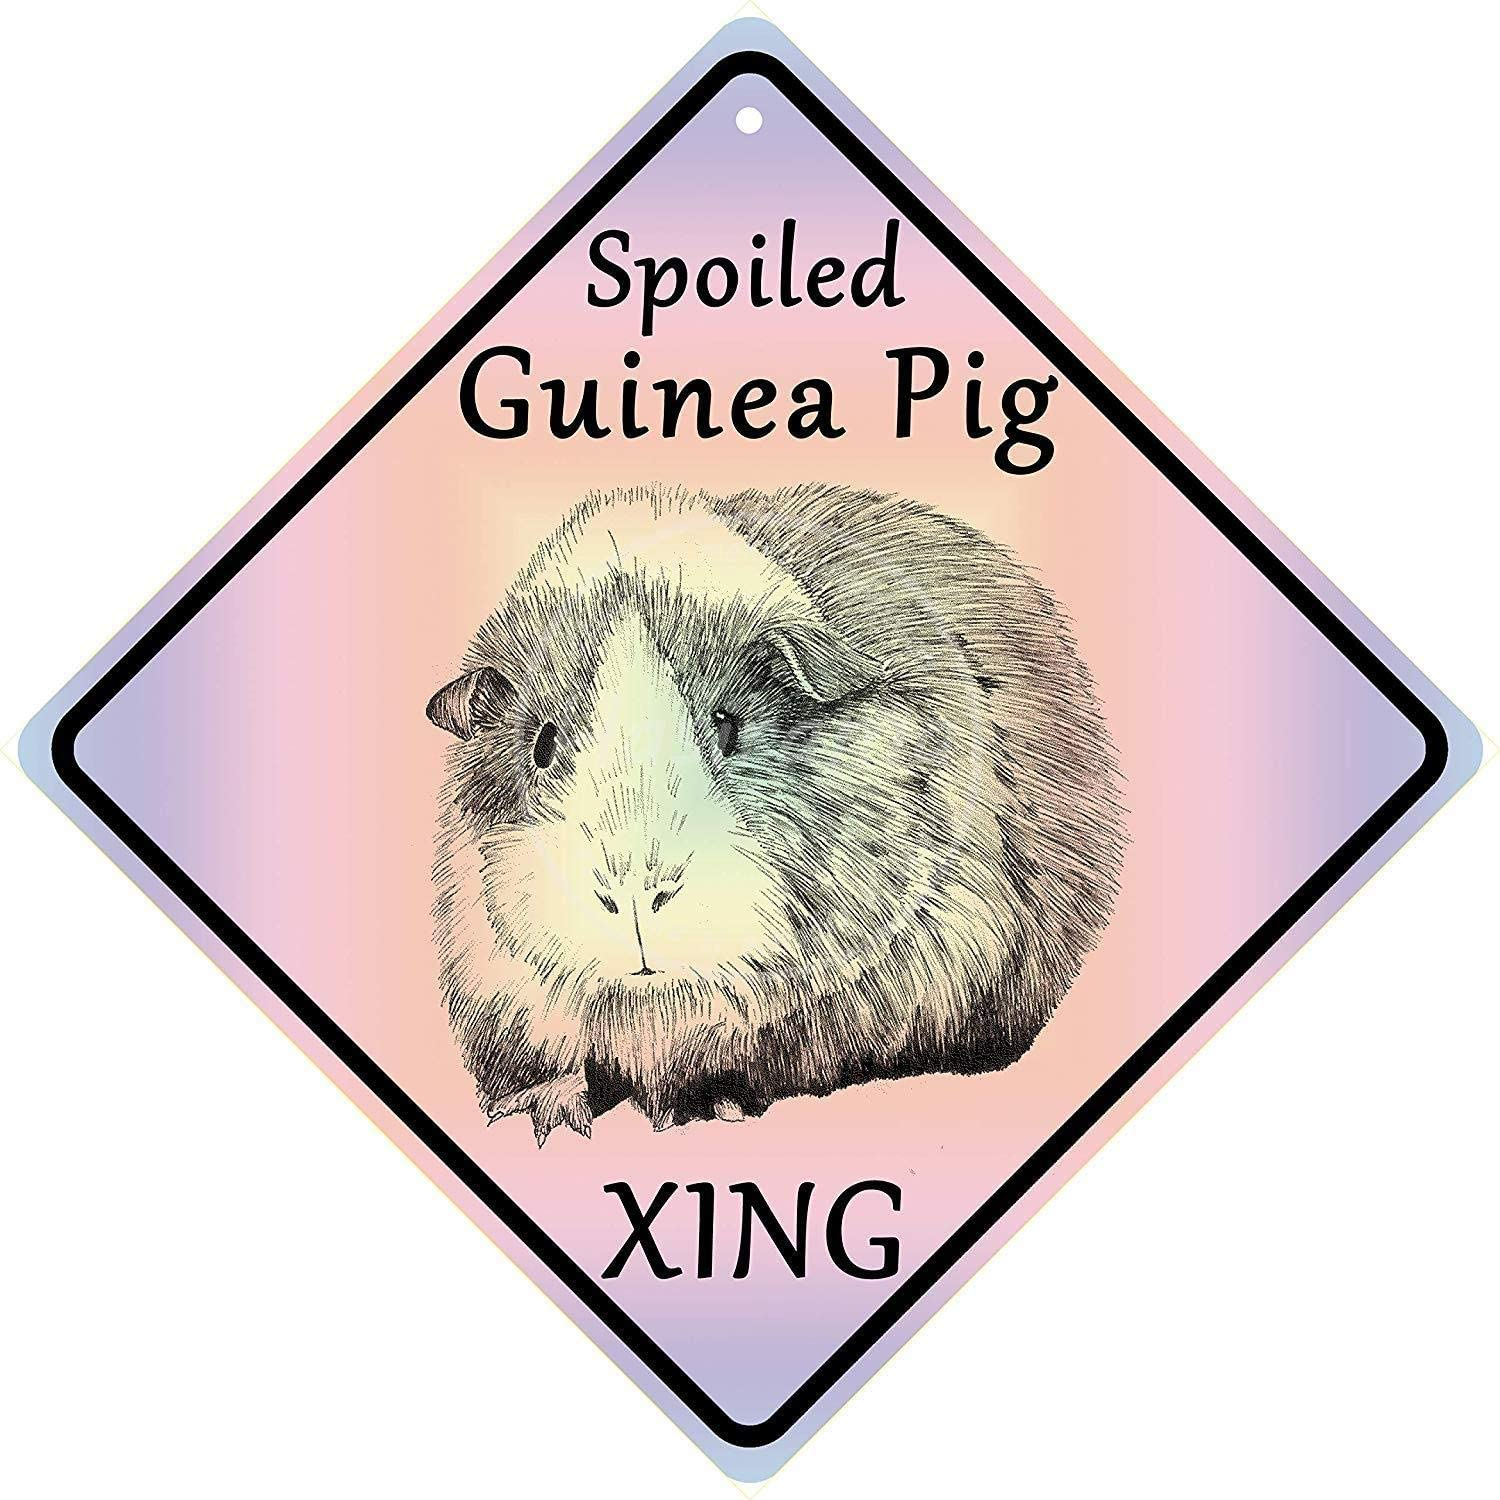 Huzkc Spoiled Guinea Pig Xing Tin Wall Sign Metal Poster Iron Painting Retro Wall Decor Vintage Band Hanging Plaque Yard Bar Pub Cafe Stadium Cinema Gift 12x12 inches